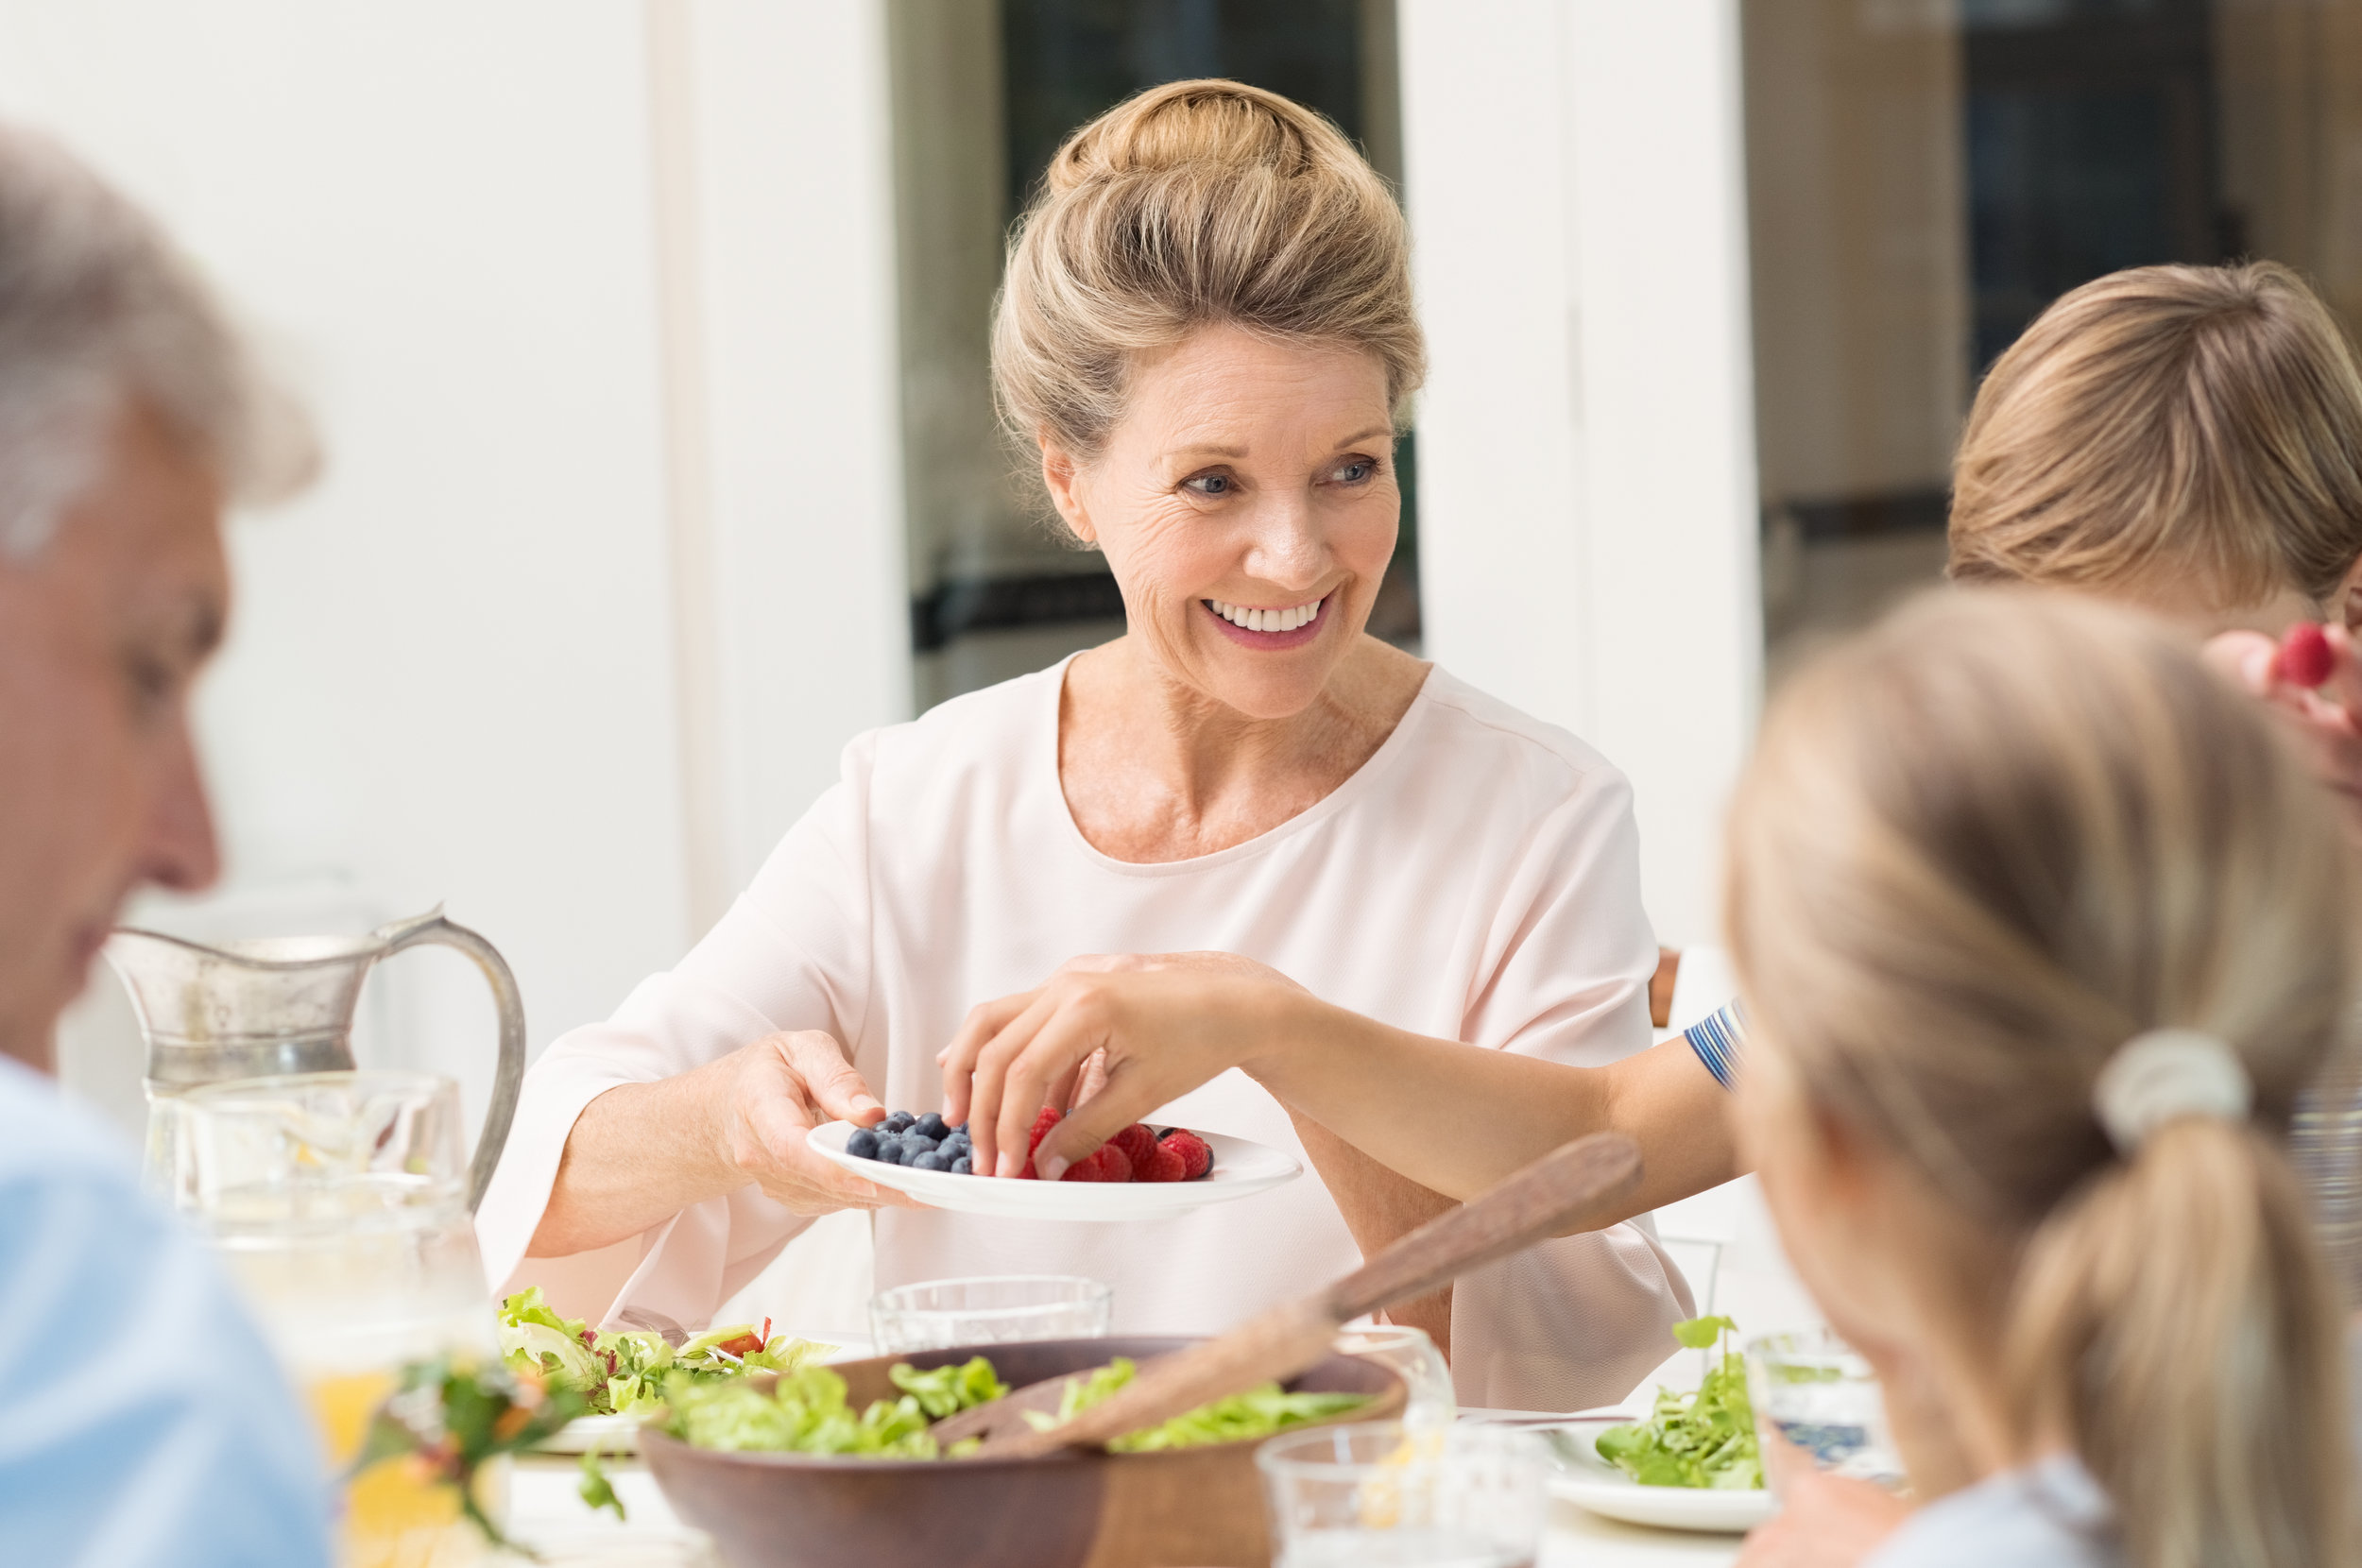 Family Nutrition & Wellness - Healthy eating is a family matter. Considering everyones food preferences, dietary needs and mealtimes can get complicated. Let me help you!